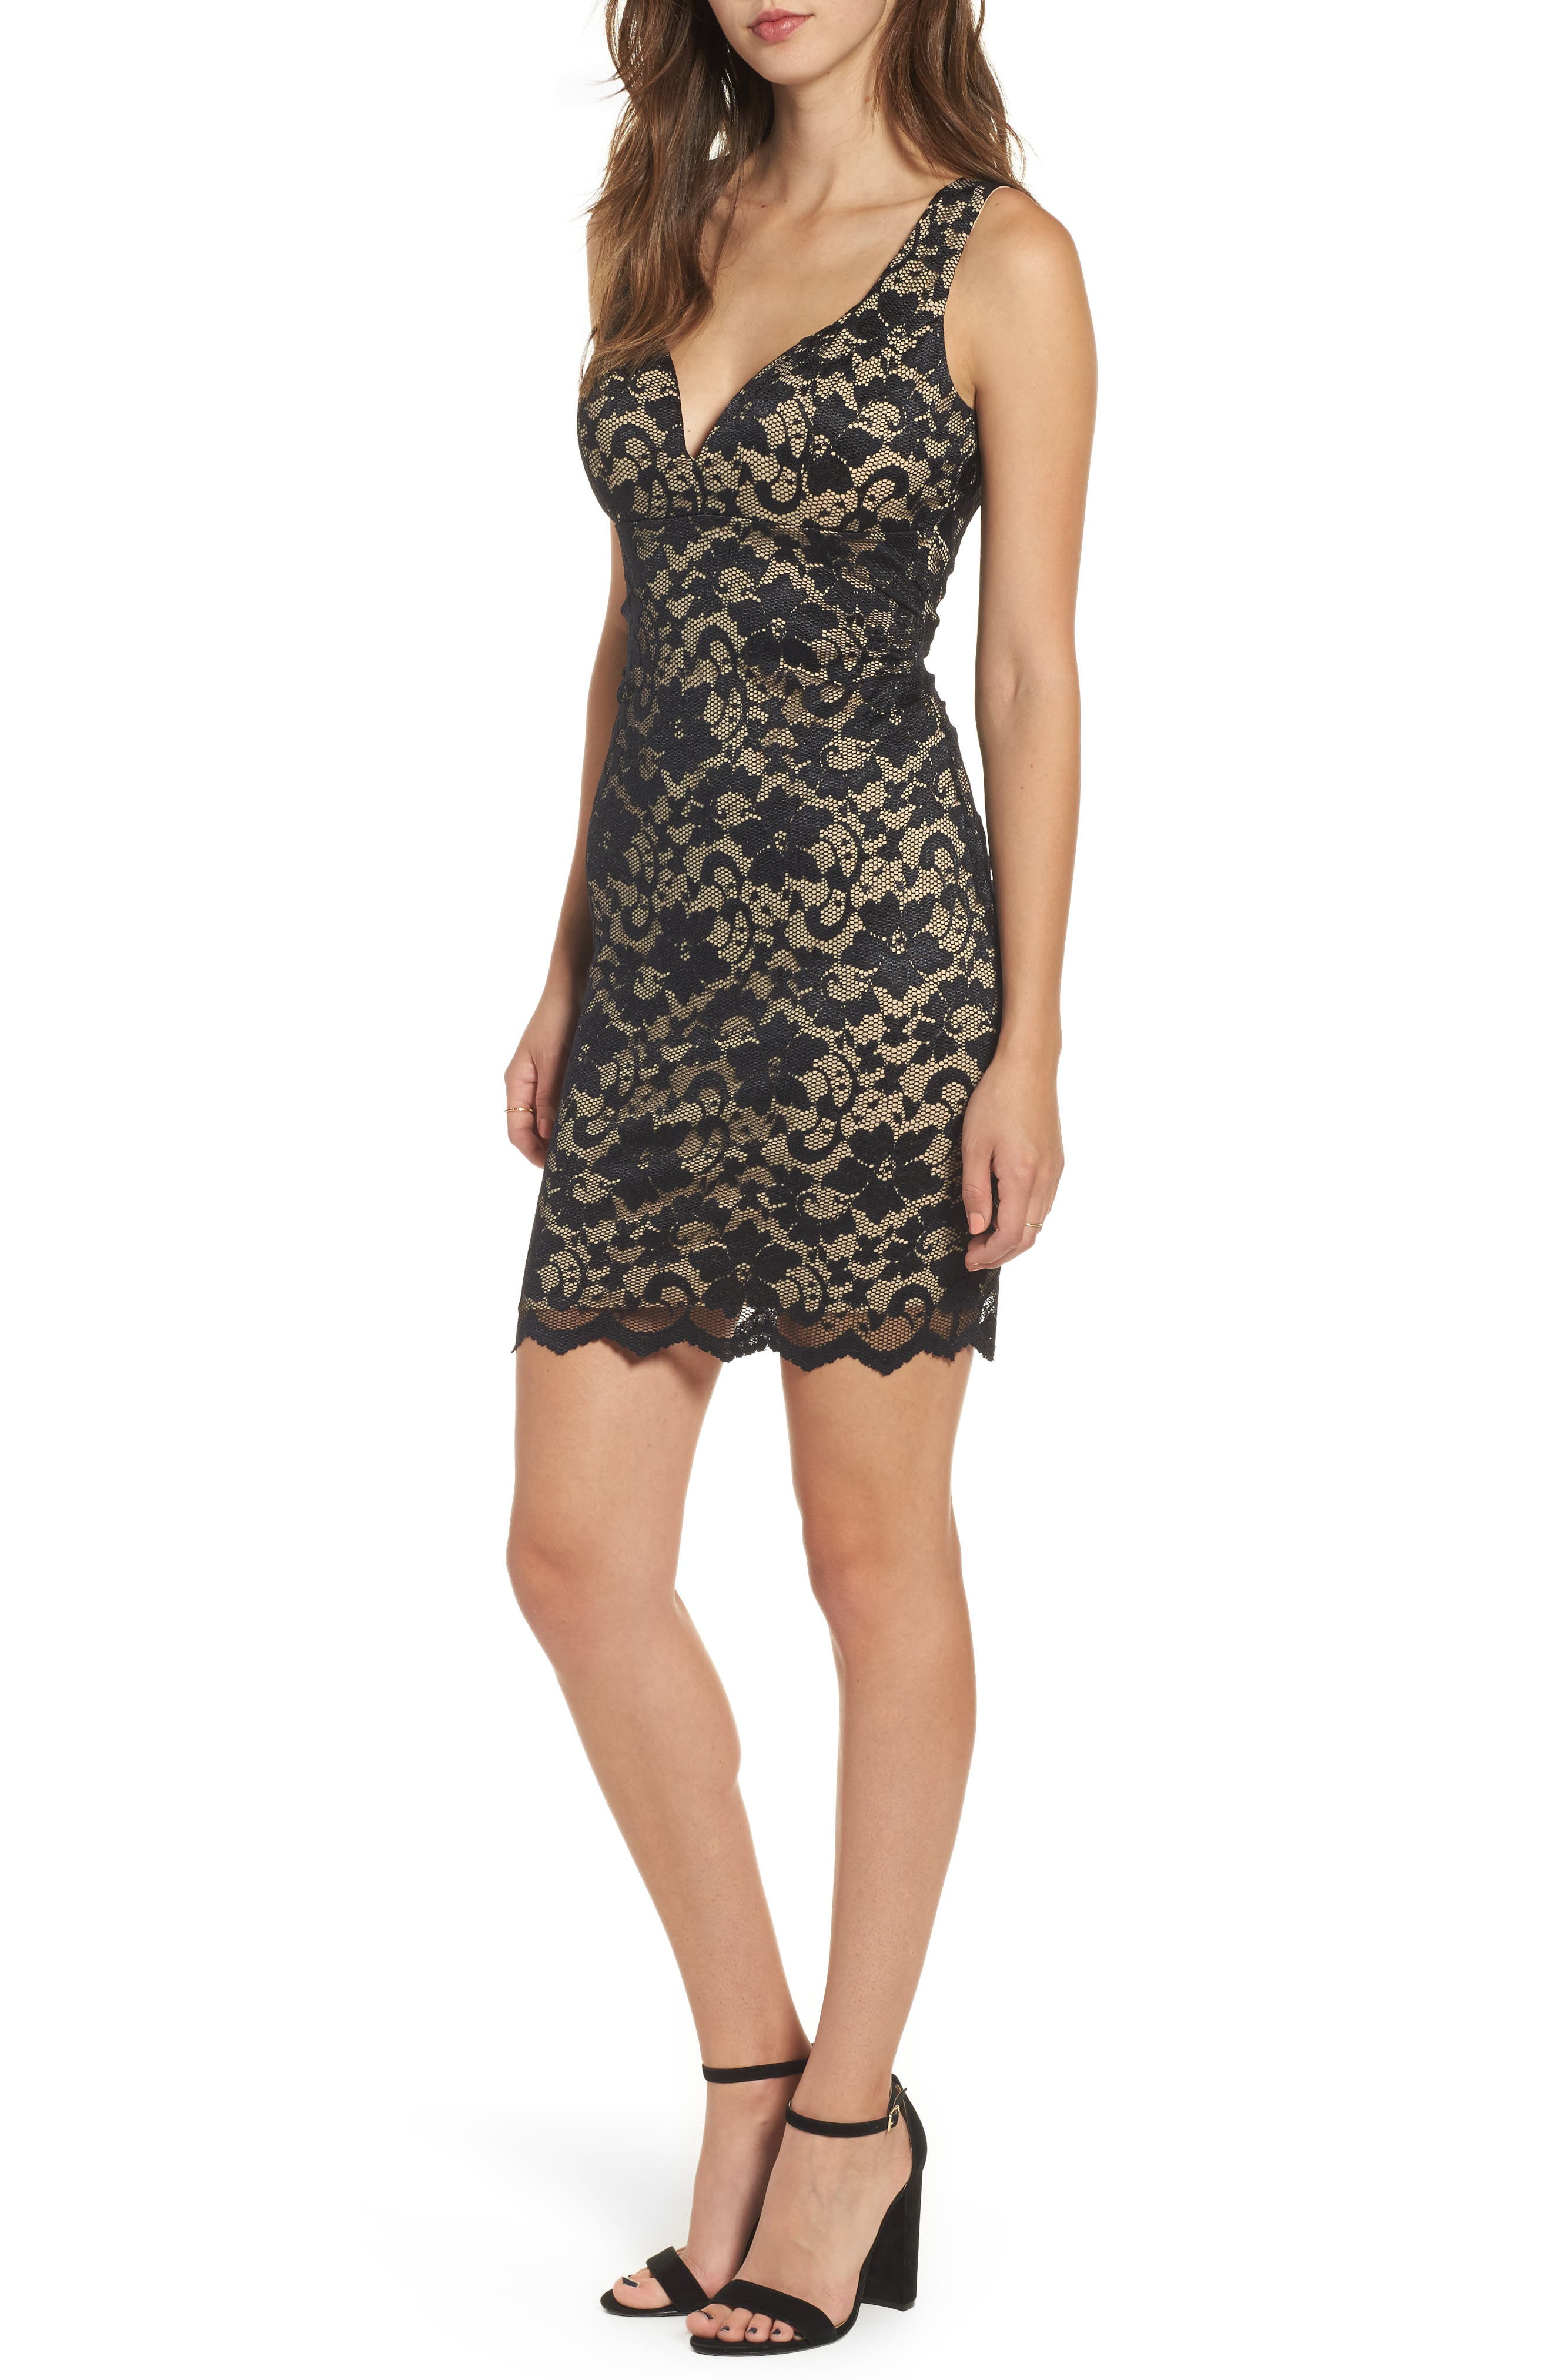 Love Nickie Lew Lace Body Con Dress,                         Main,                         color, Black/ Nude